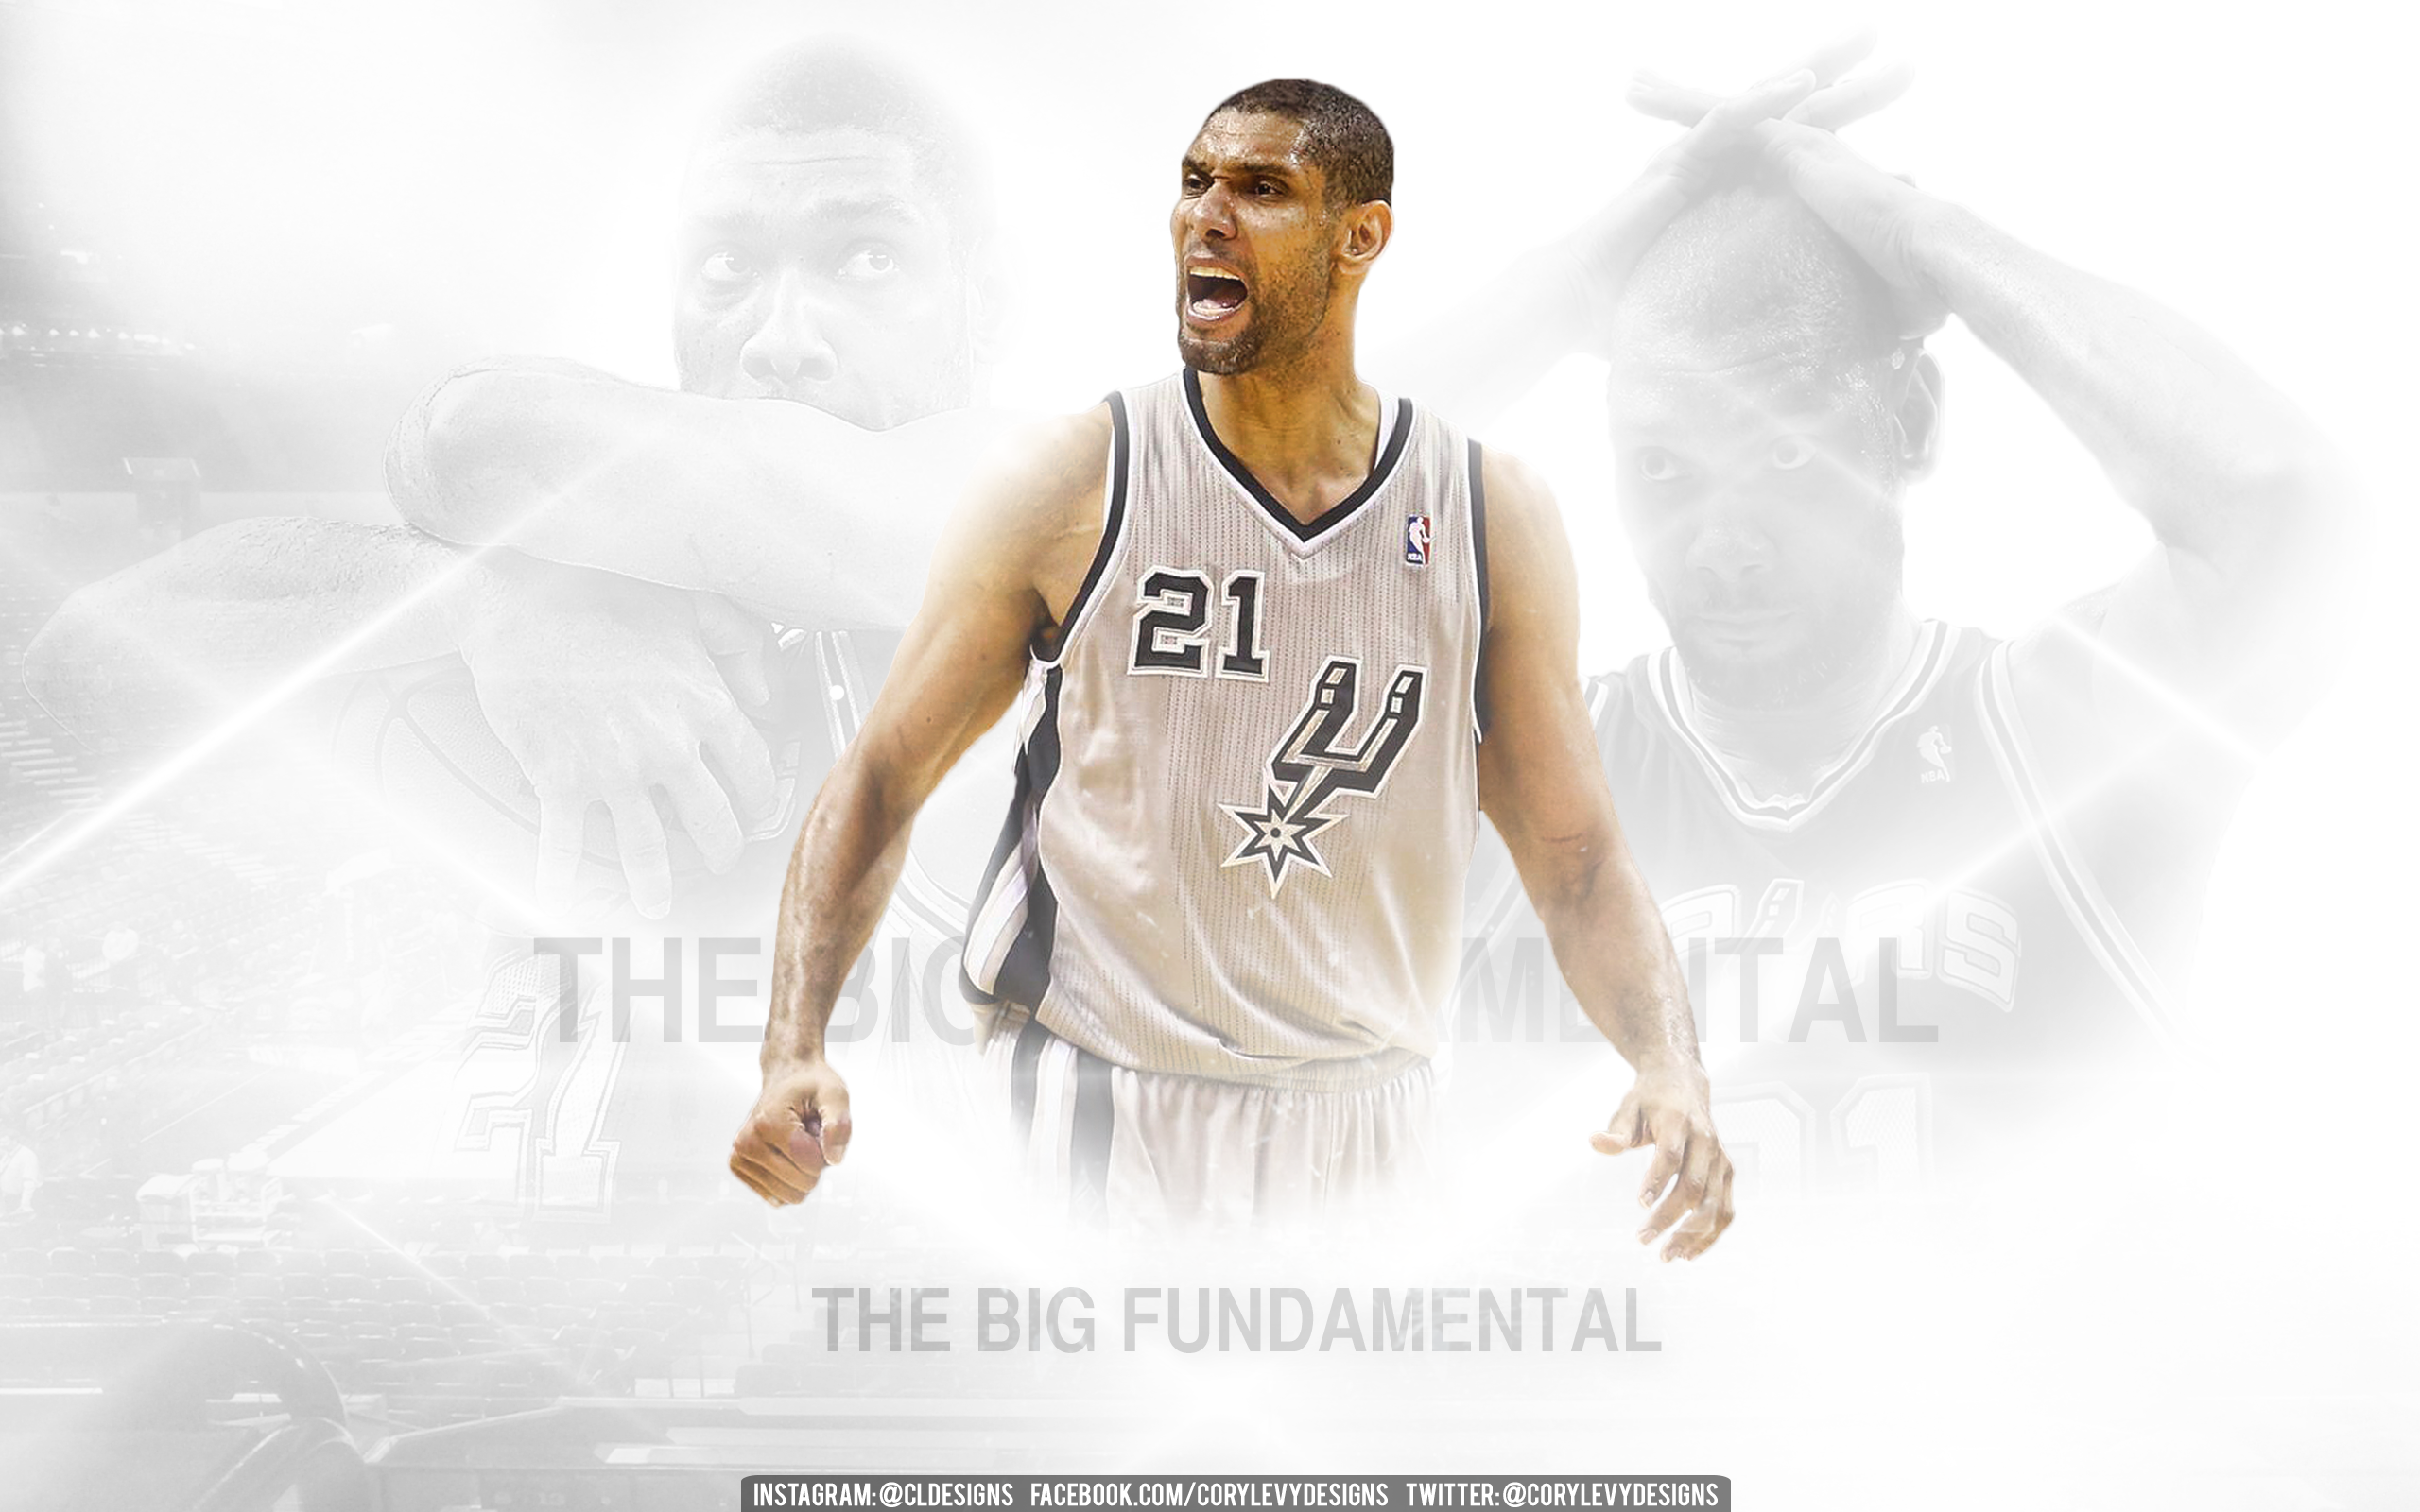 39 39 the big fundamental 39 39 tim duncan wallpaper by - Tim duncan iphone wallpaper ...